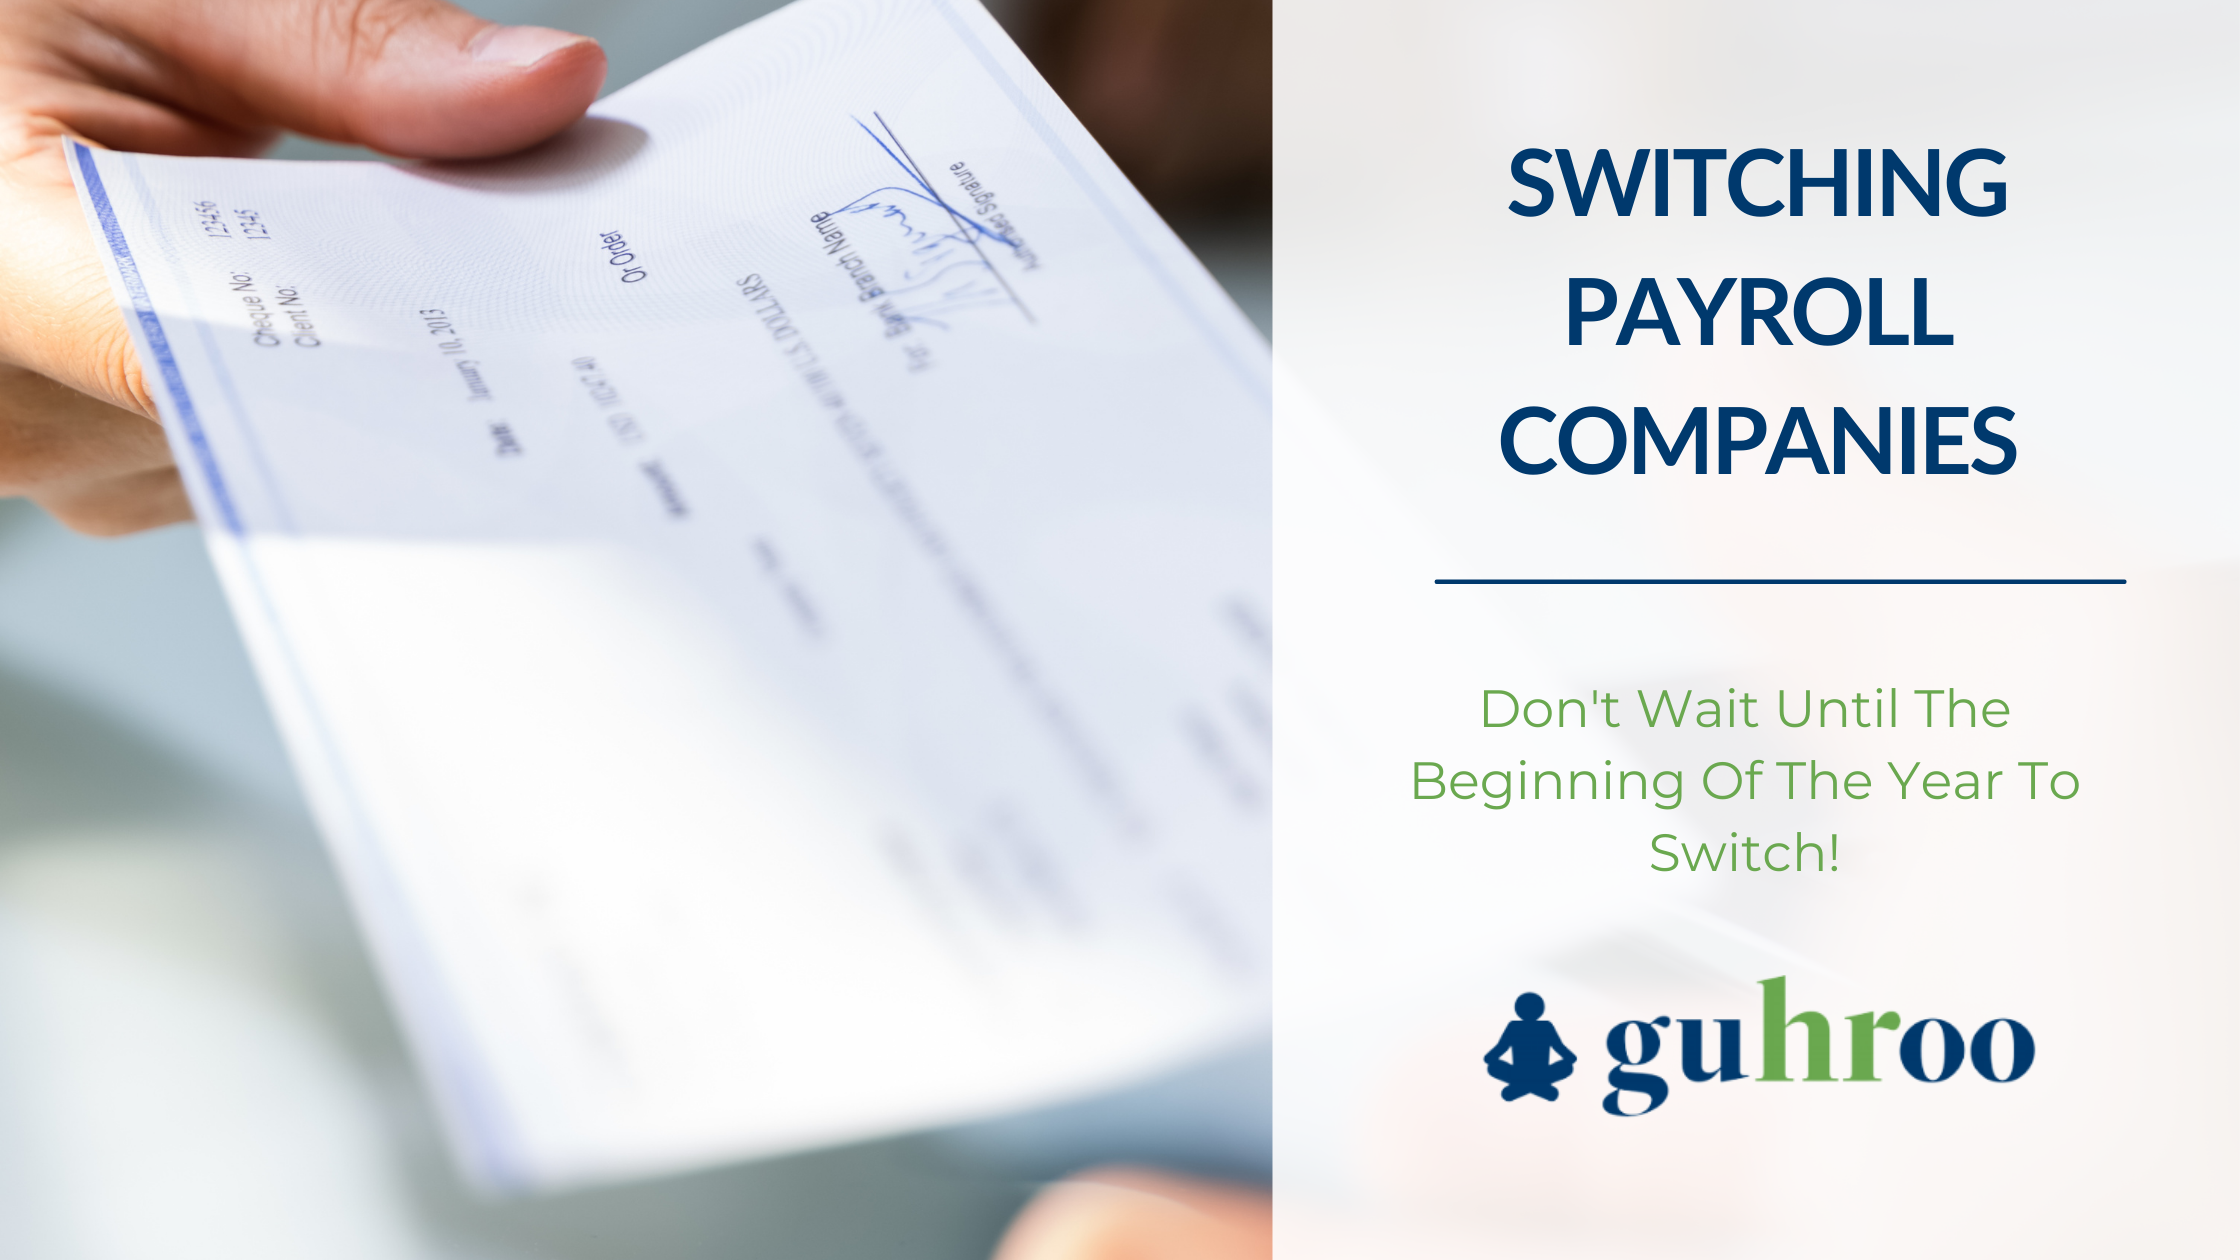 When to switch payroll companies